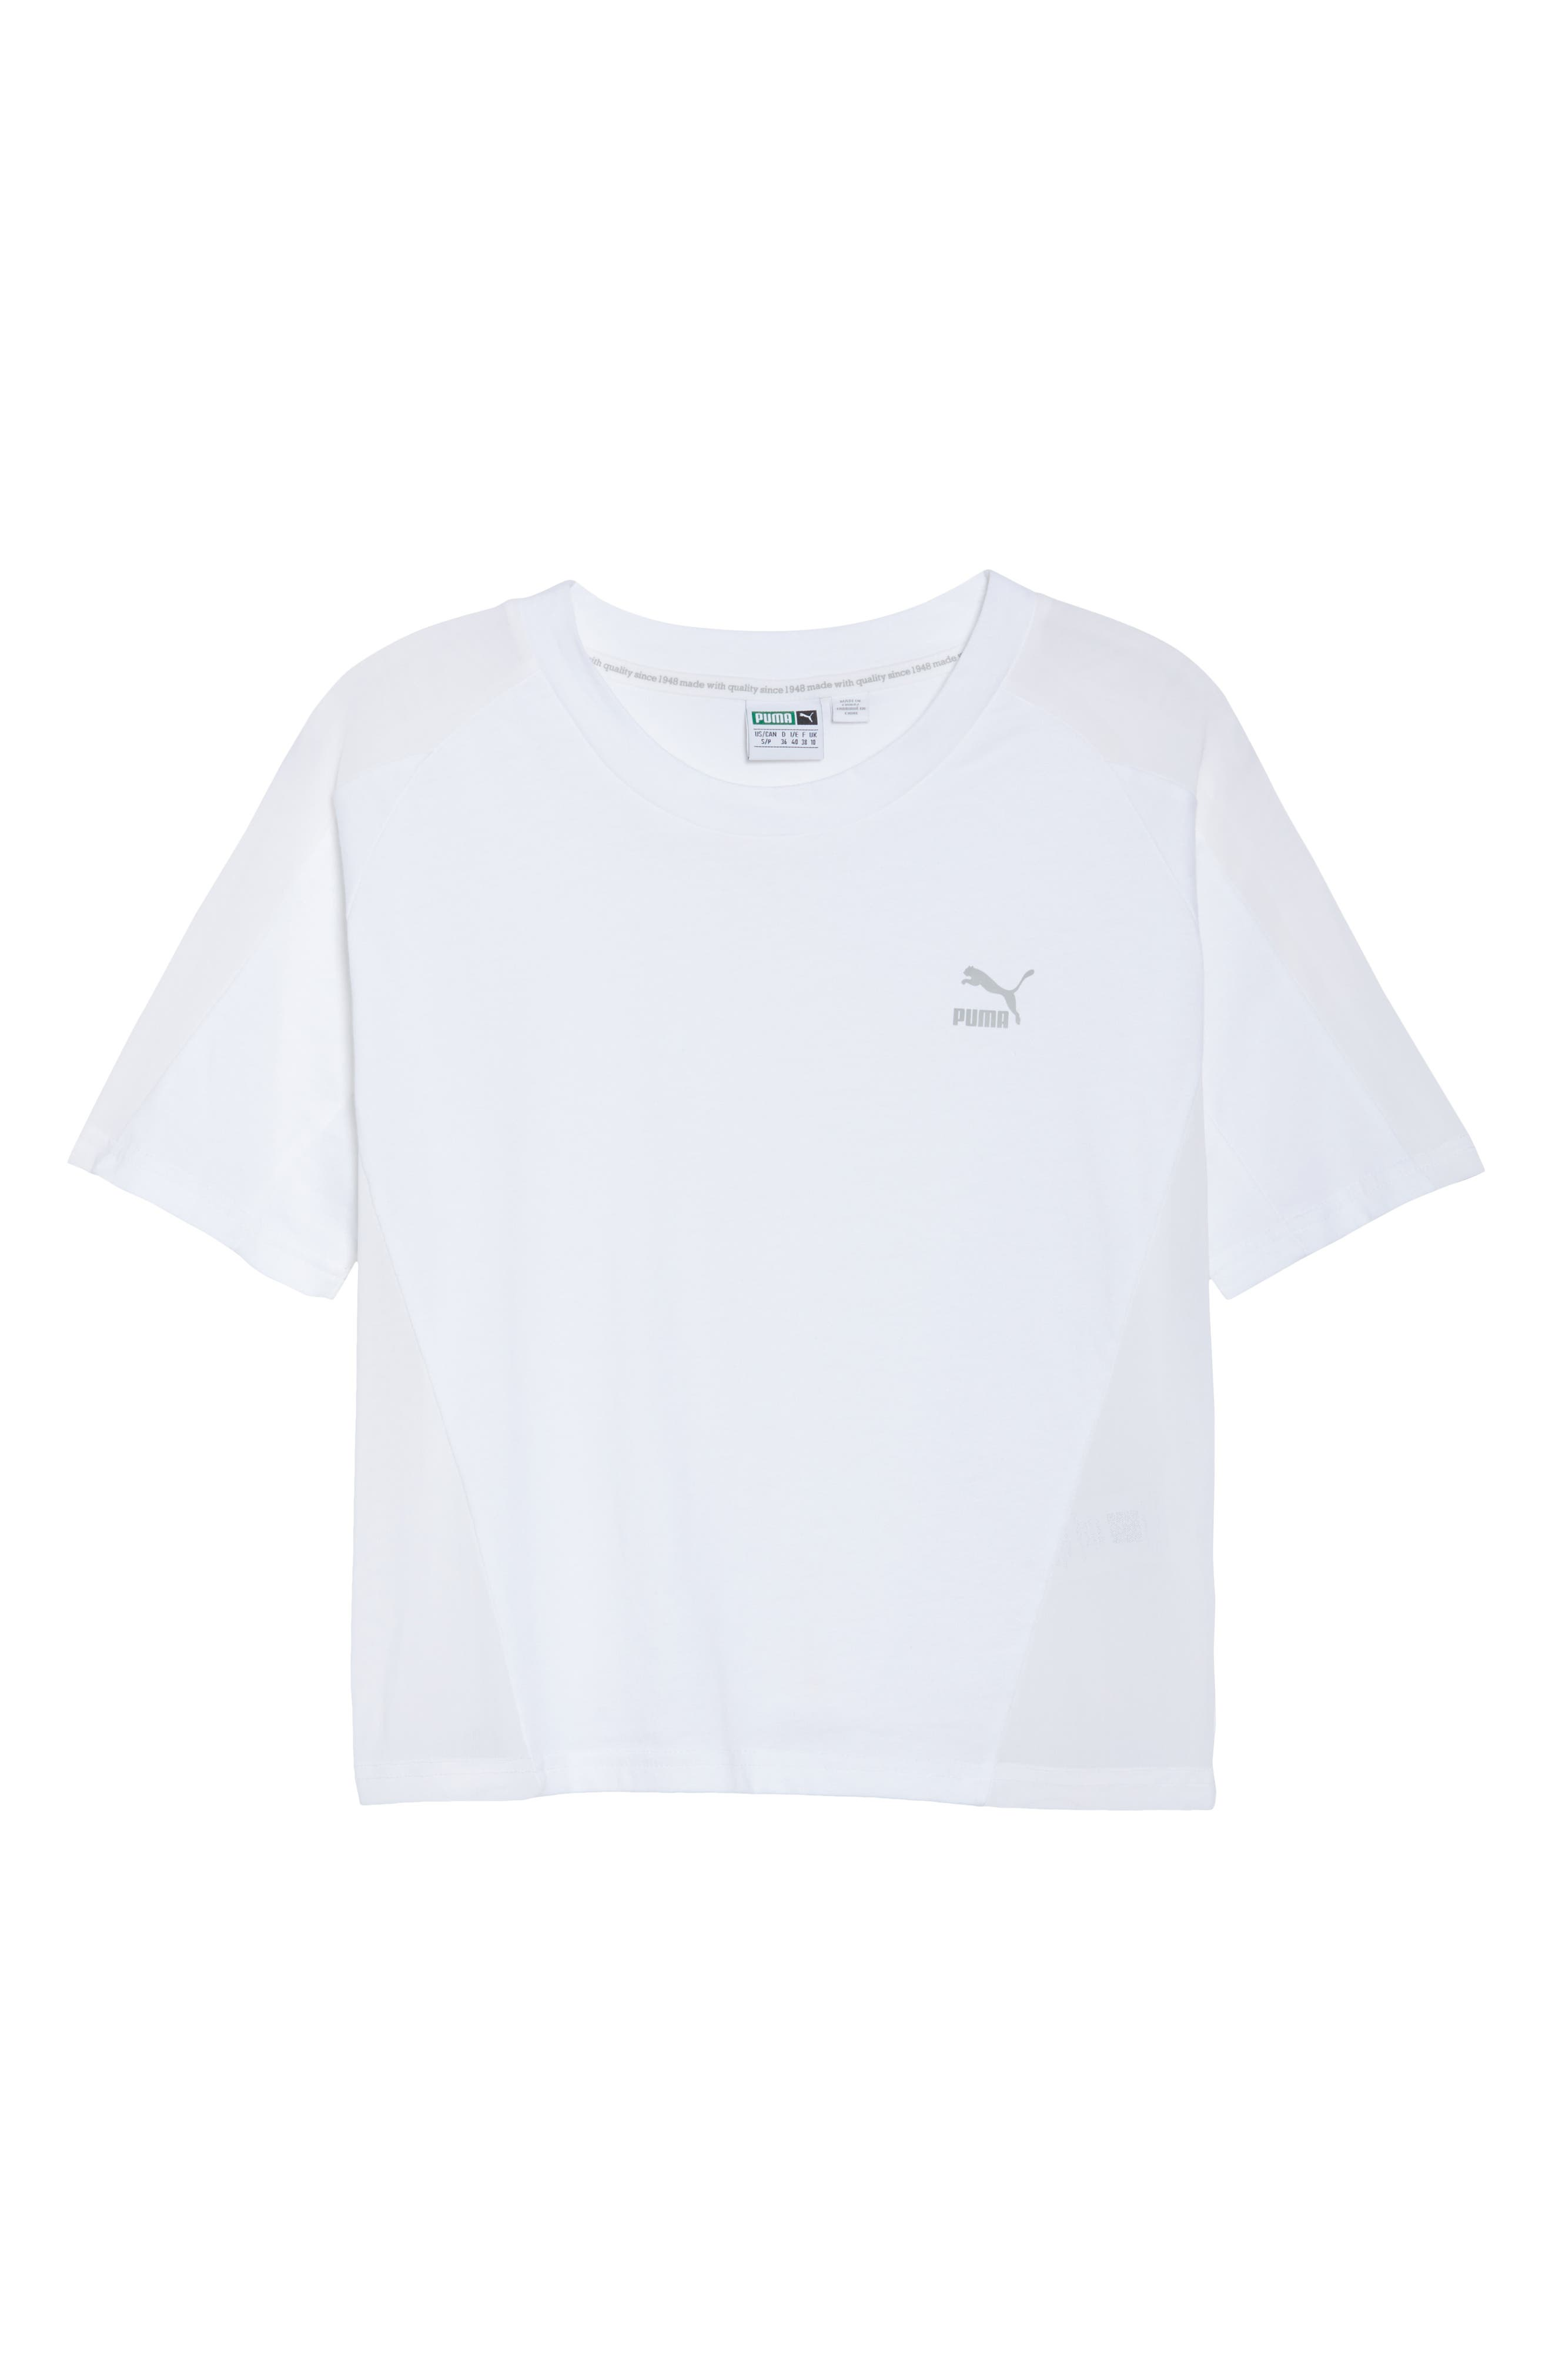 Archive Tee,                             Alternate thumbnail 7, color,